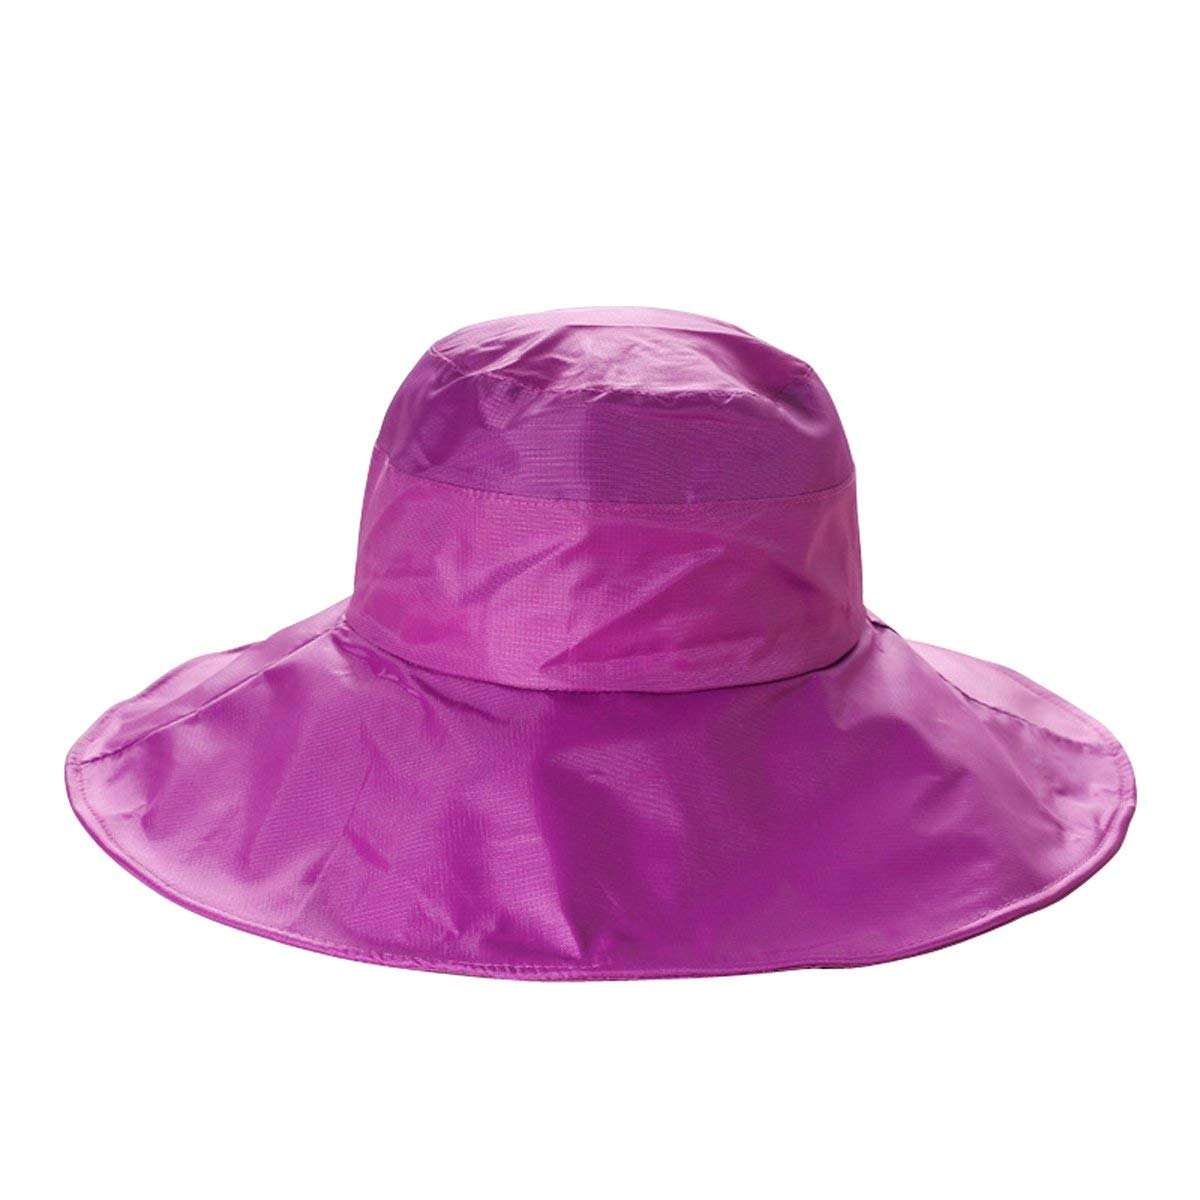 Get Quotations · Women s Rain Hats Waterproof Rain Hat Wide Brim Bucket Hat  Rain Cap Sun Hats (Magenta e8281b6fdd74